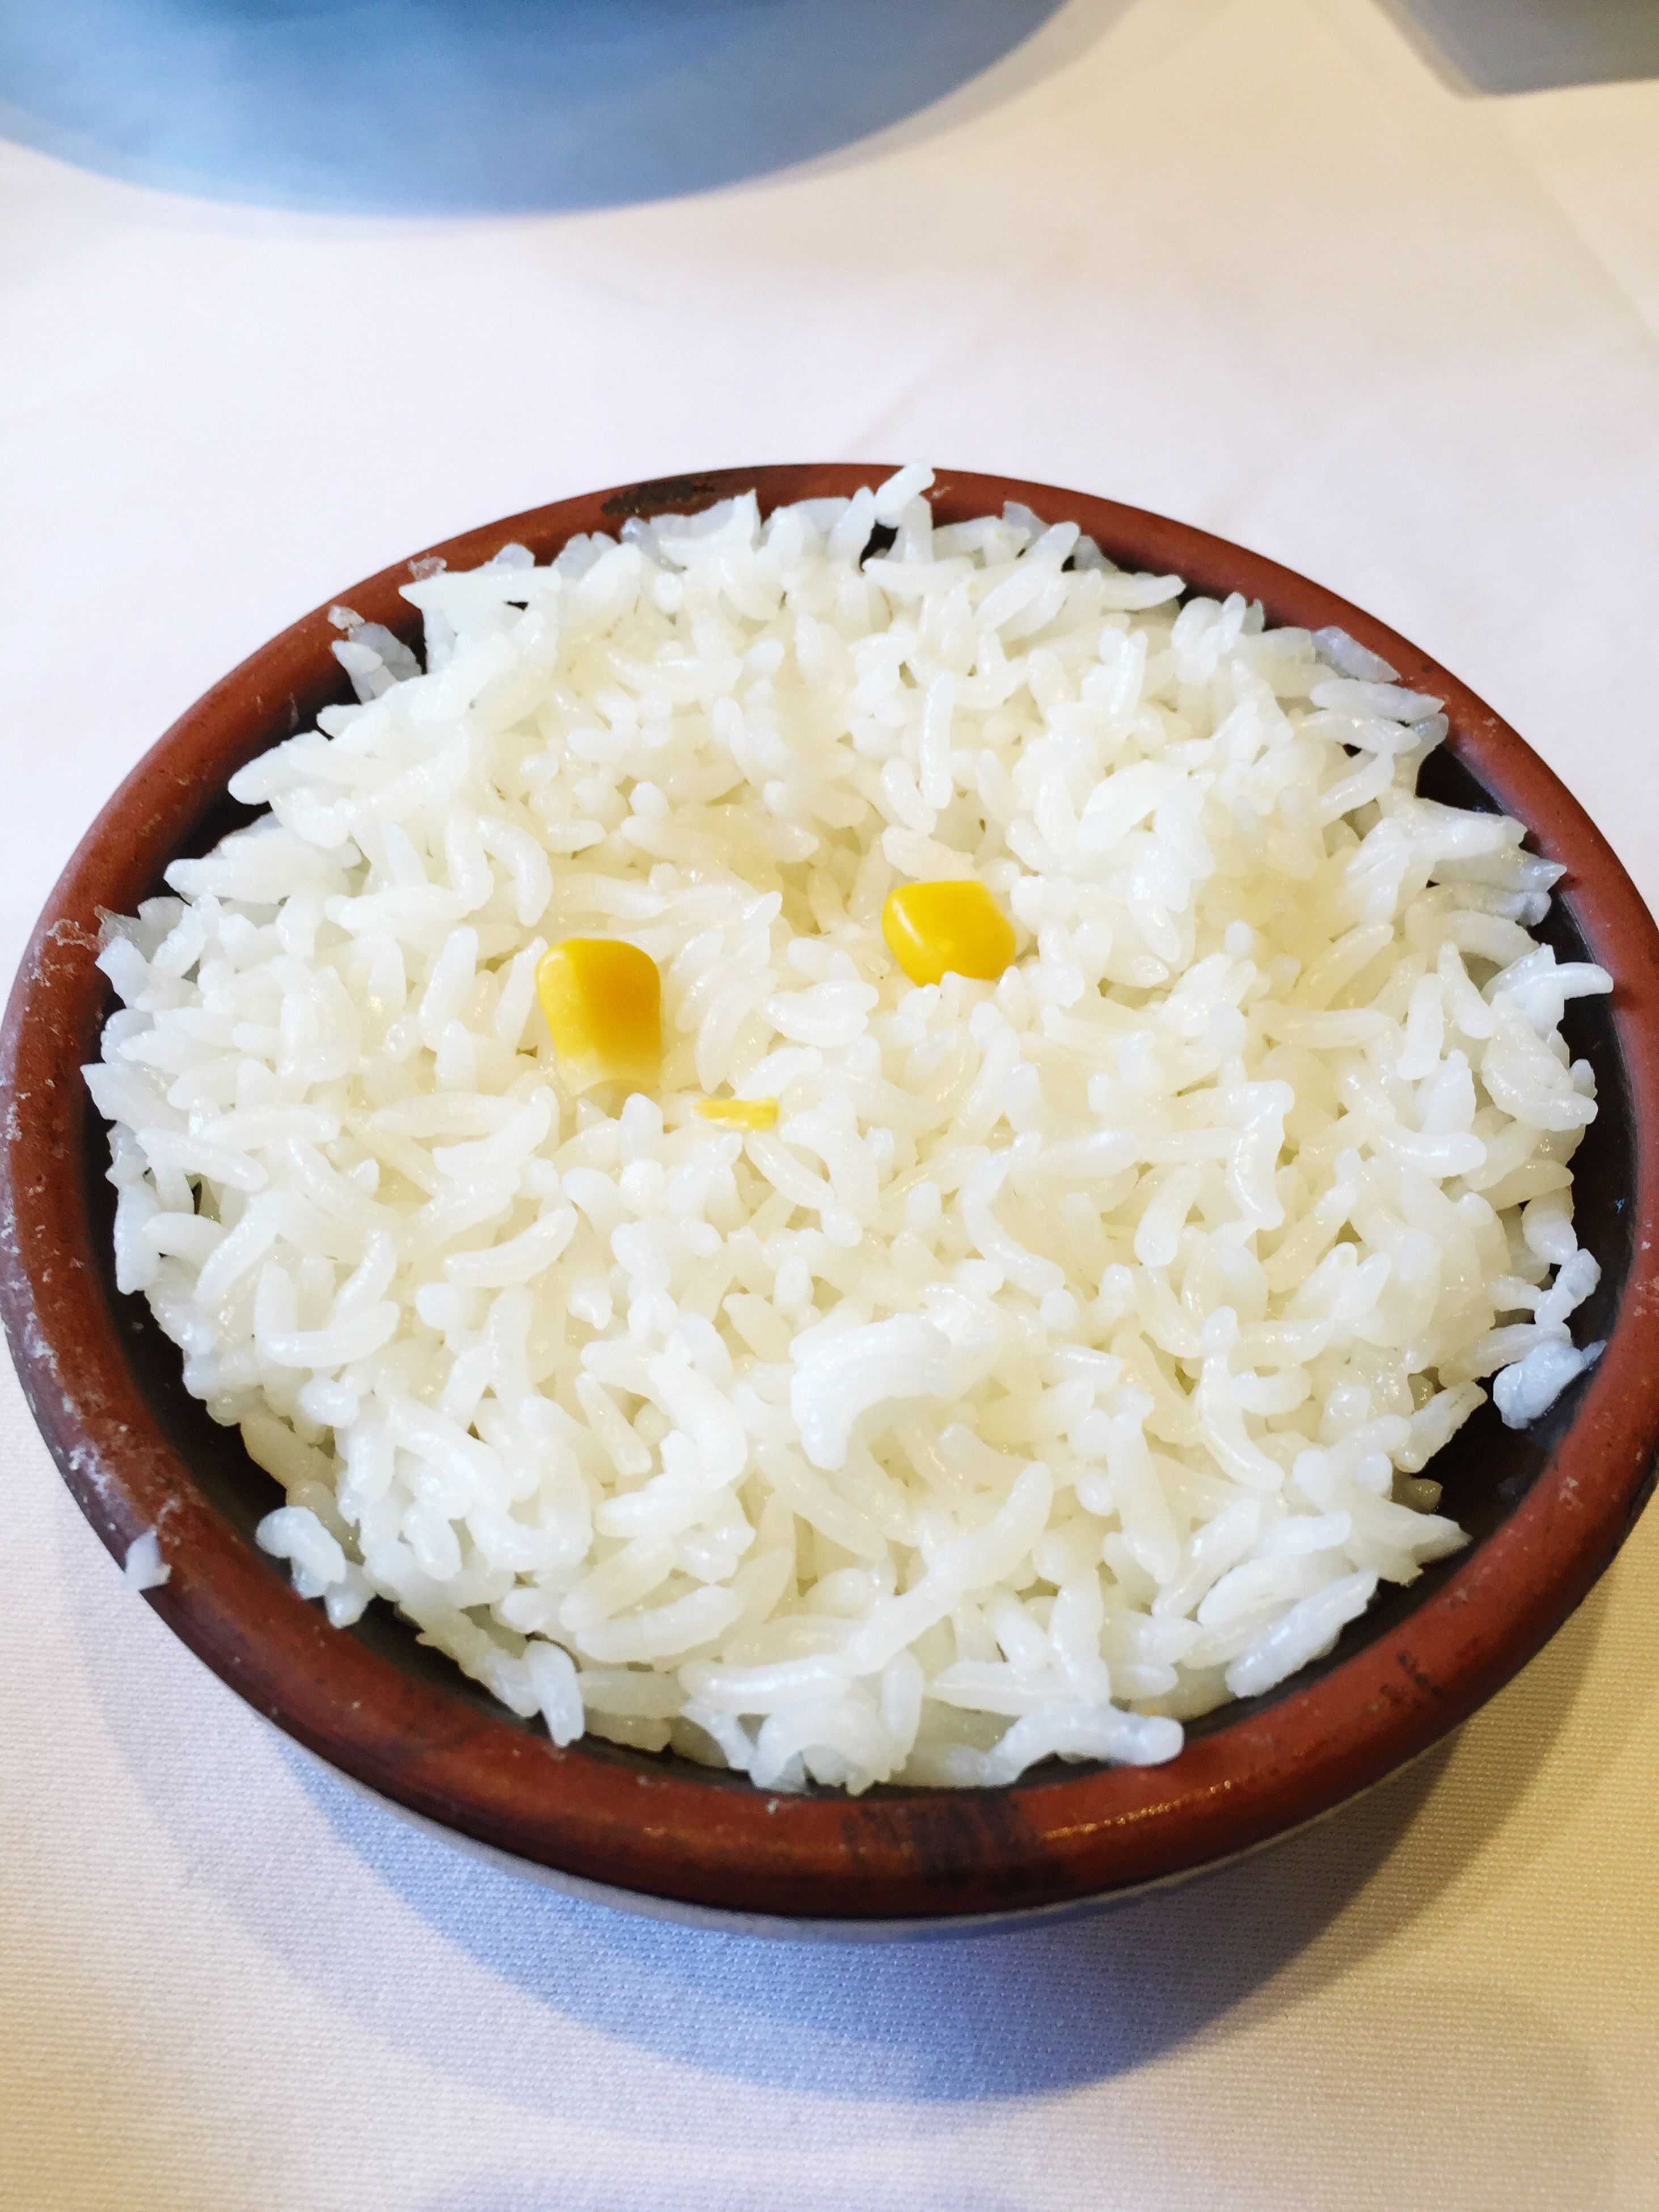 food and drink, food, no people, rice - food staple, indoors, plate, white color, freshness, rice, serving size, close-up, ready-to-eat, healthy eating, fried rice, day